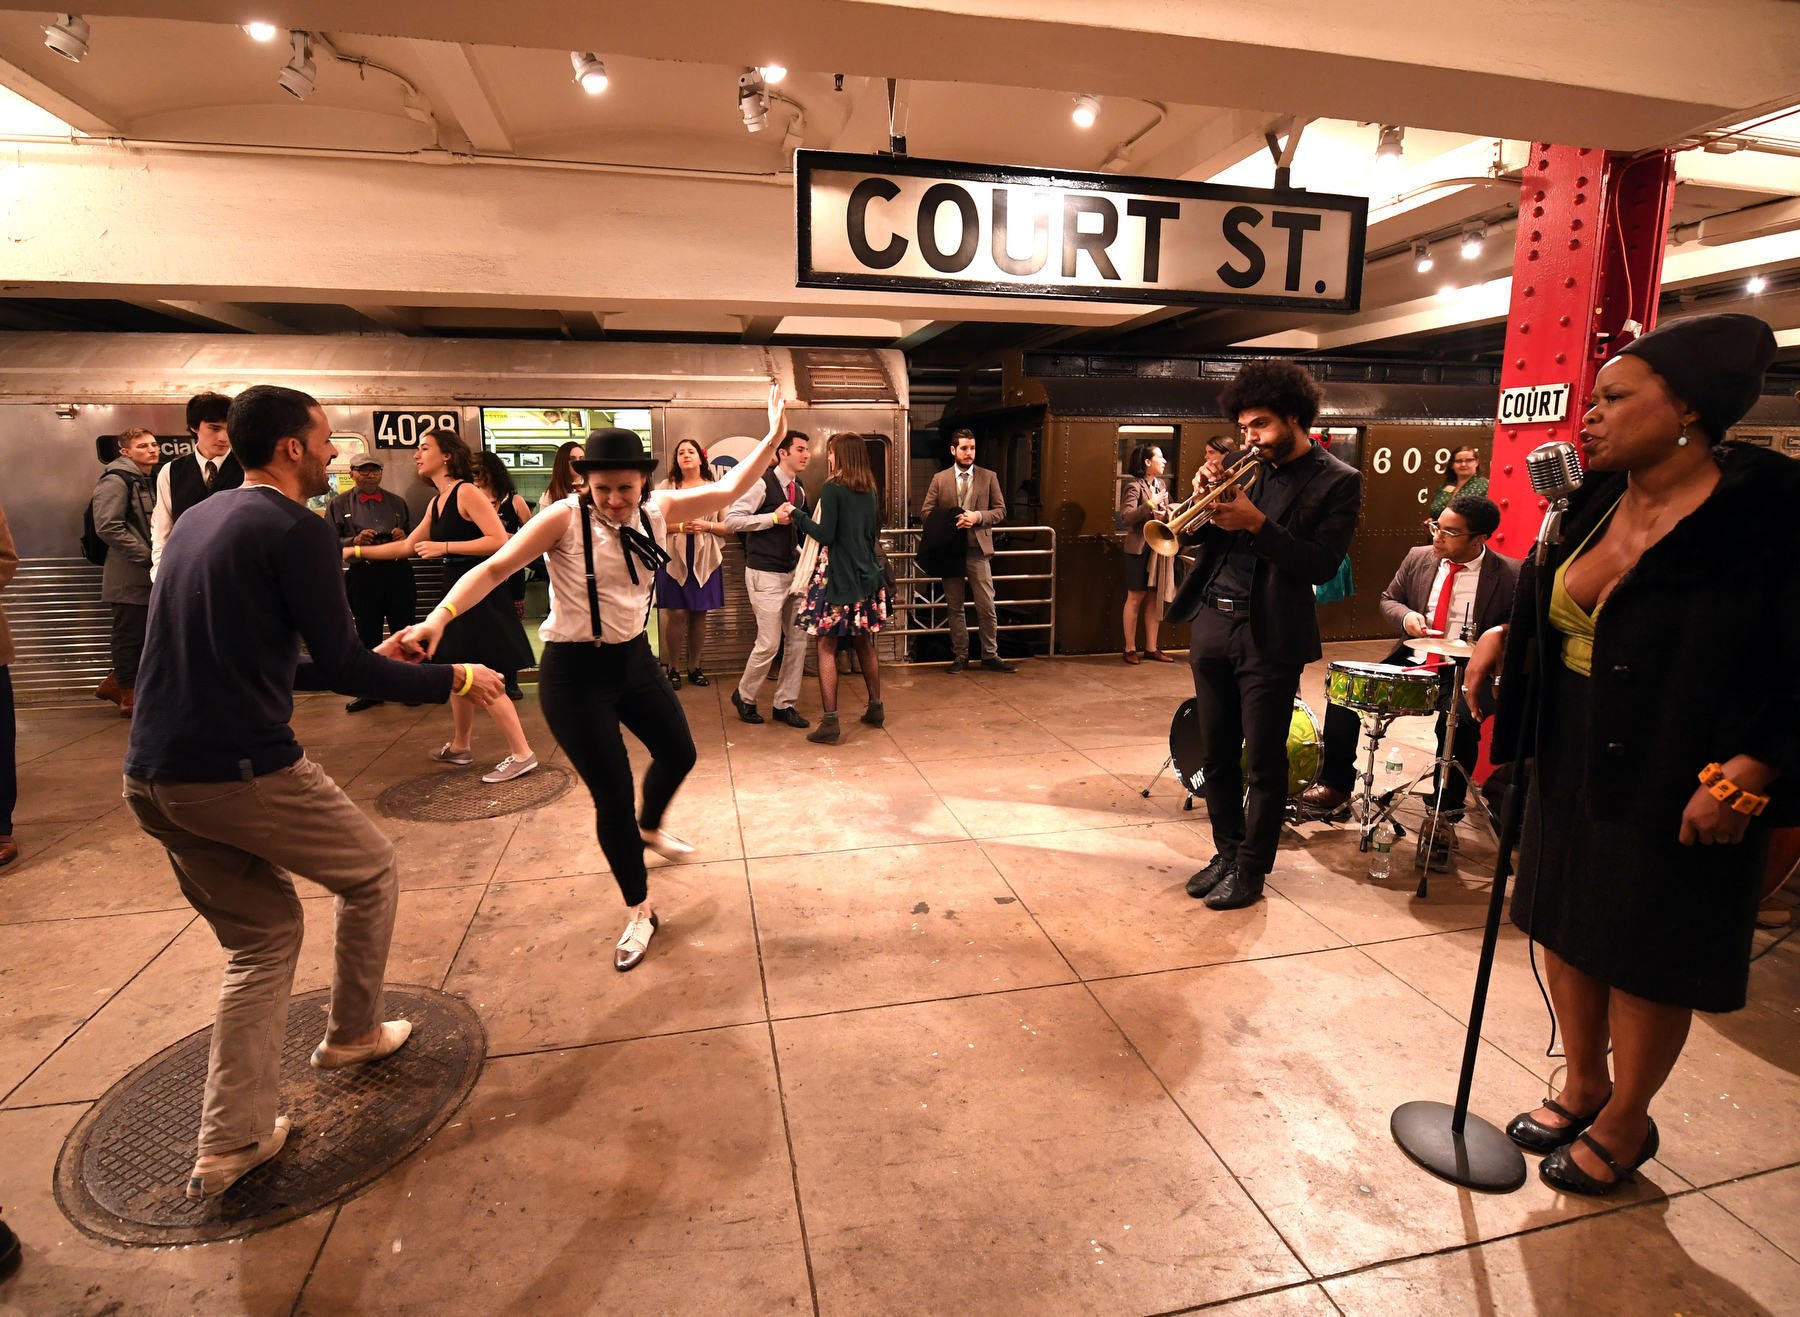 """""""Subway Swing"""" at the New York Transit Museum on Sat., December 9, 2017. Photo: Shaelyn Amaio for New York Transit Museum"""